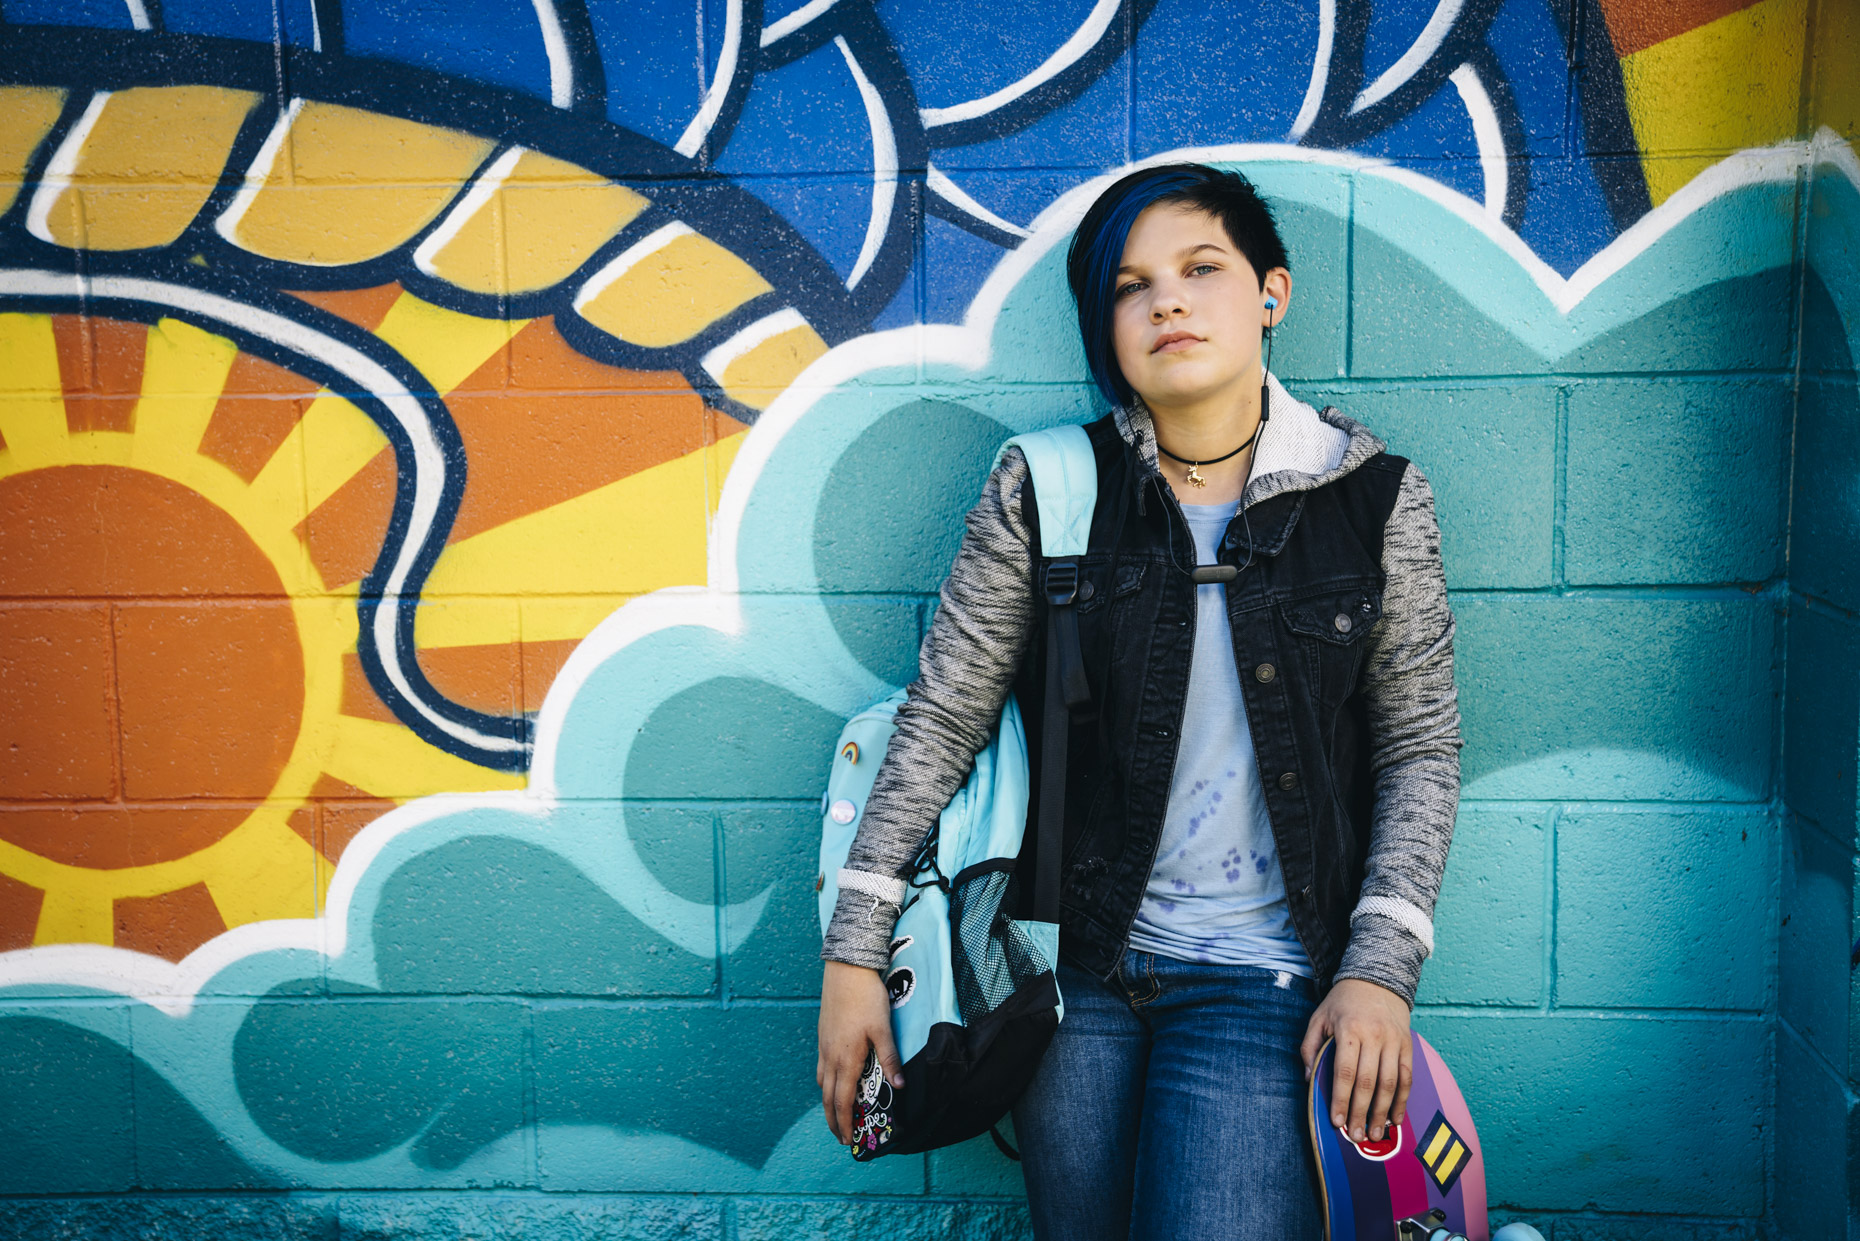 Portrait of transgender teen leaning on colorful grafitti wall